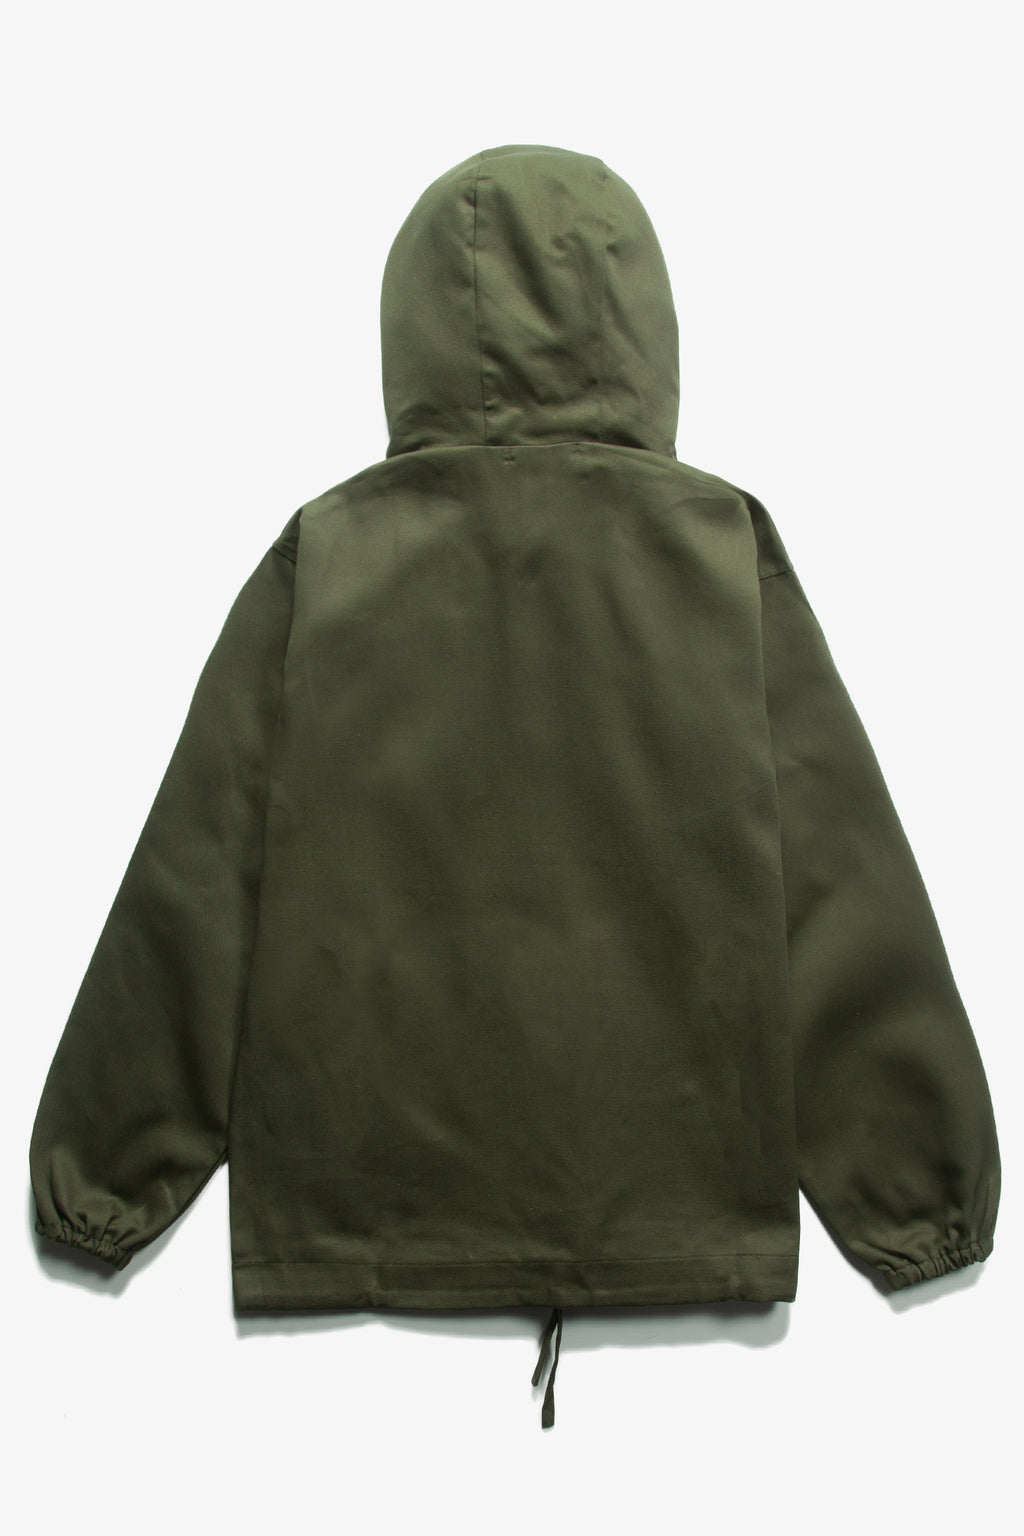 Blacksmith - Pullover Smock Jacket - Olive